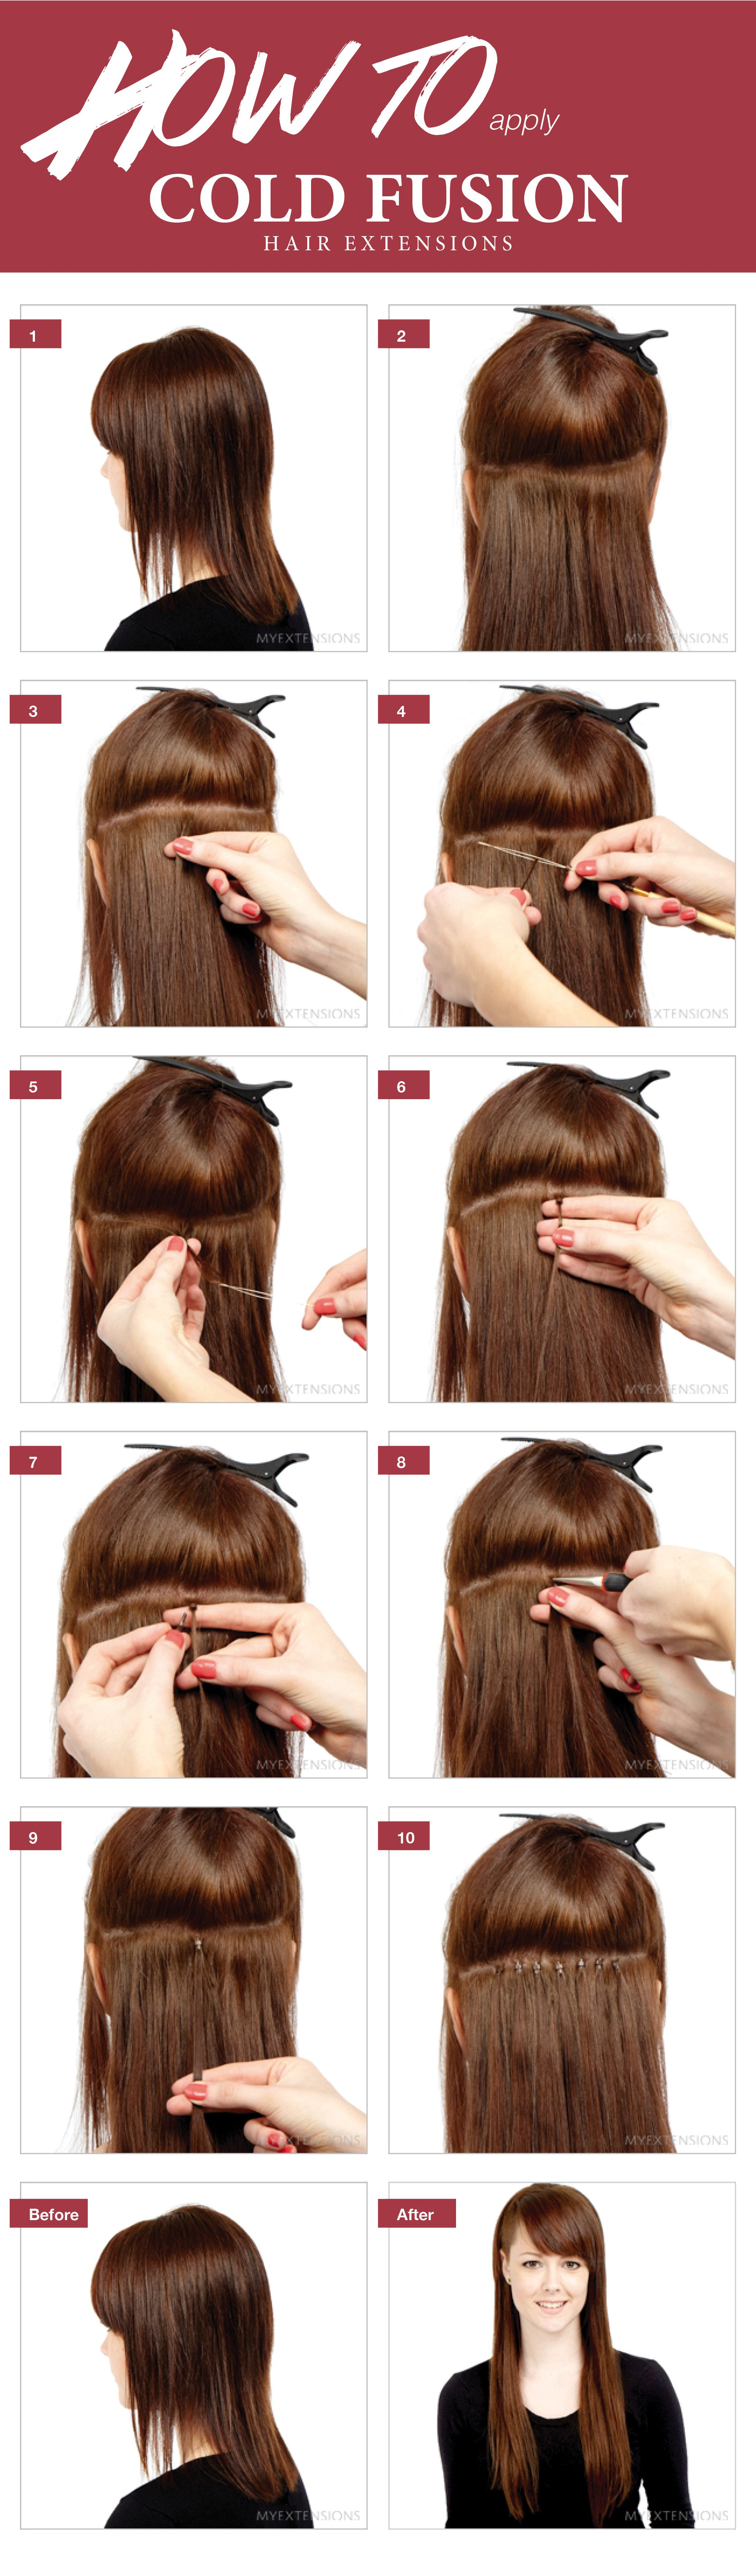 Choosing the best type of hair extensions hair extensions step by step guide sdan pstter du cold fusion hair extensions se mere p pmusecretfo Image collections